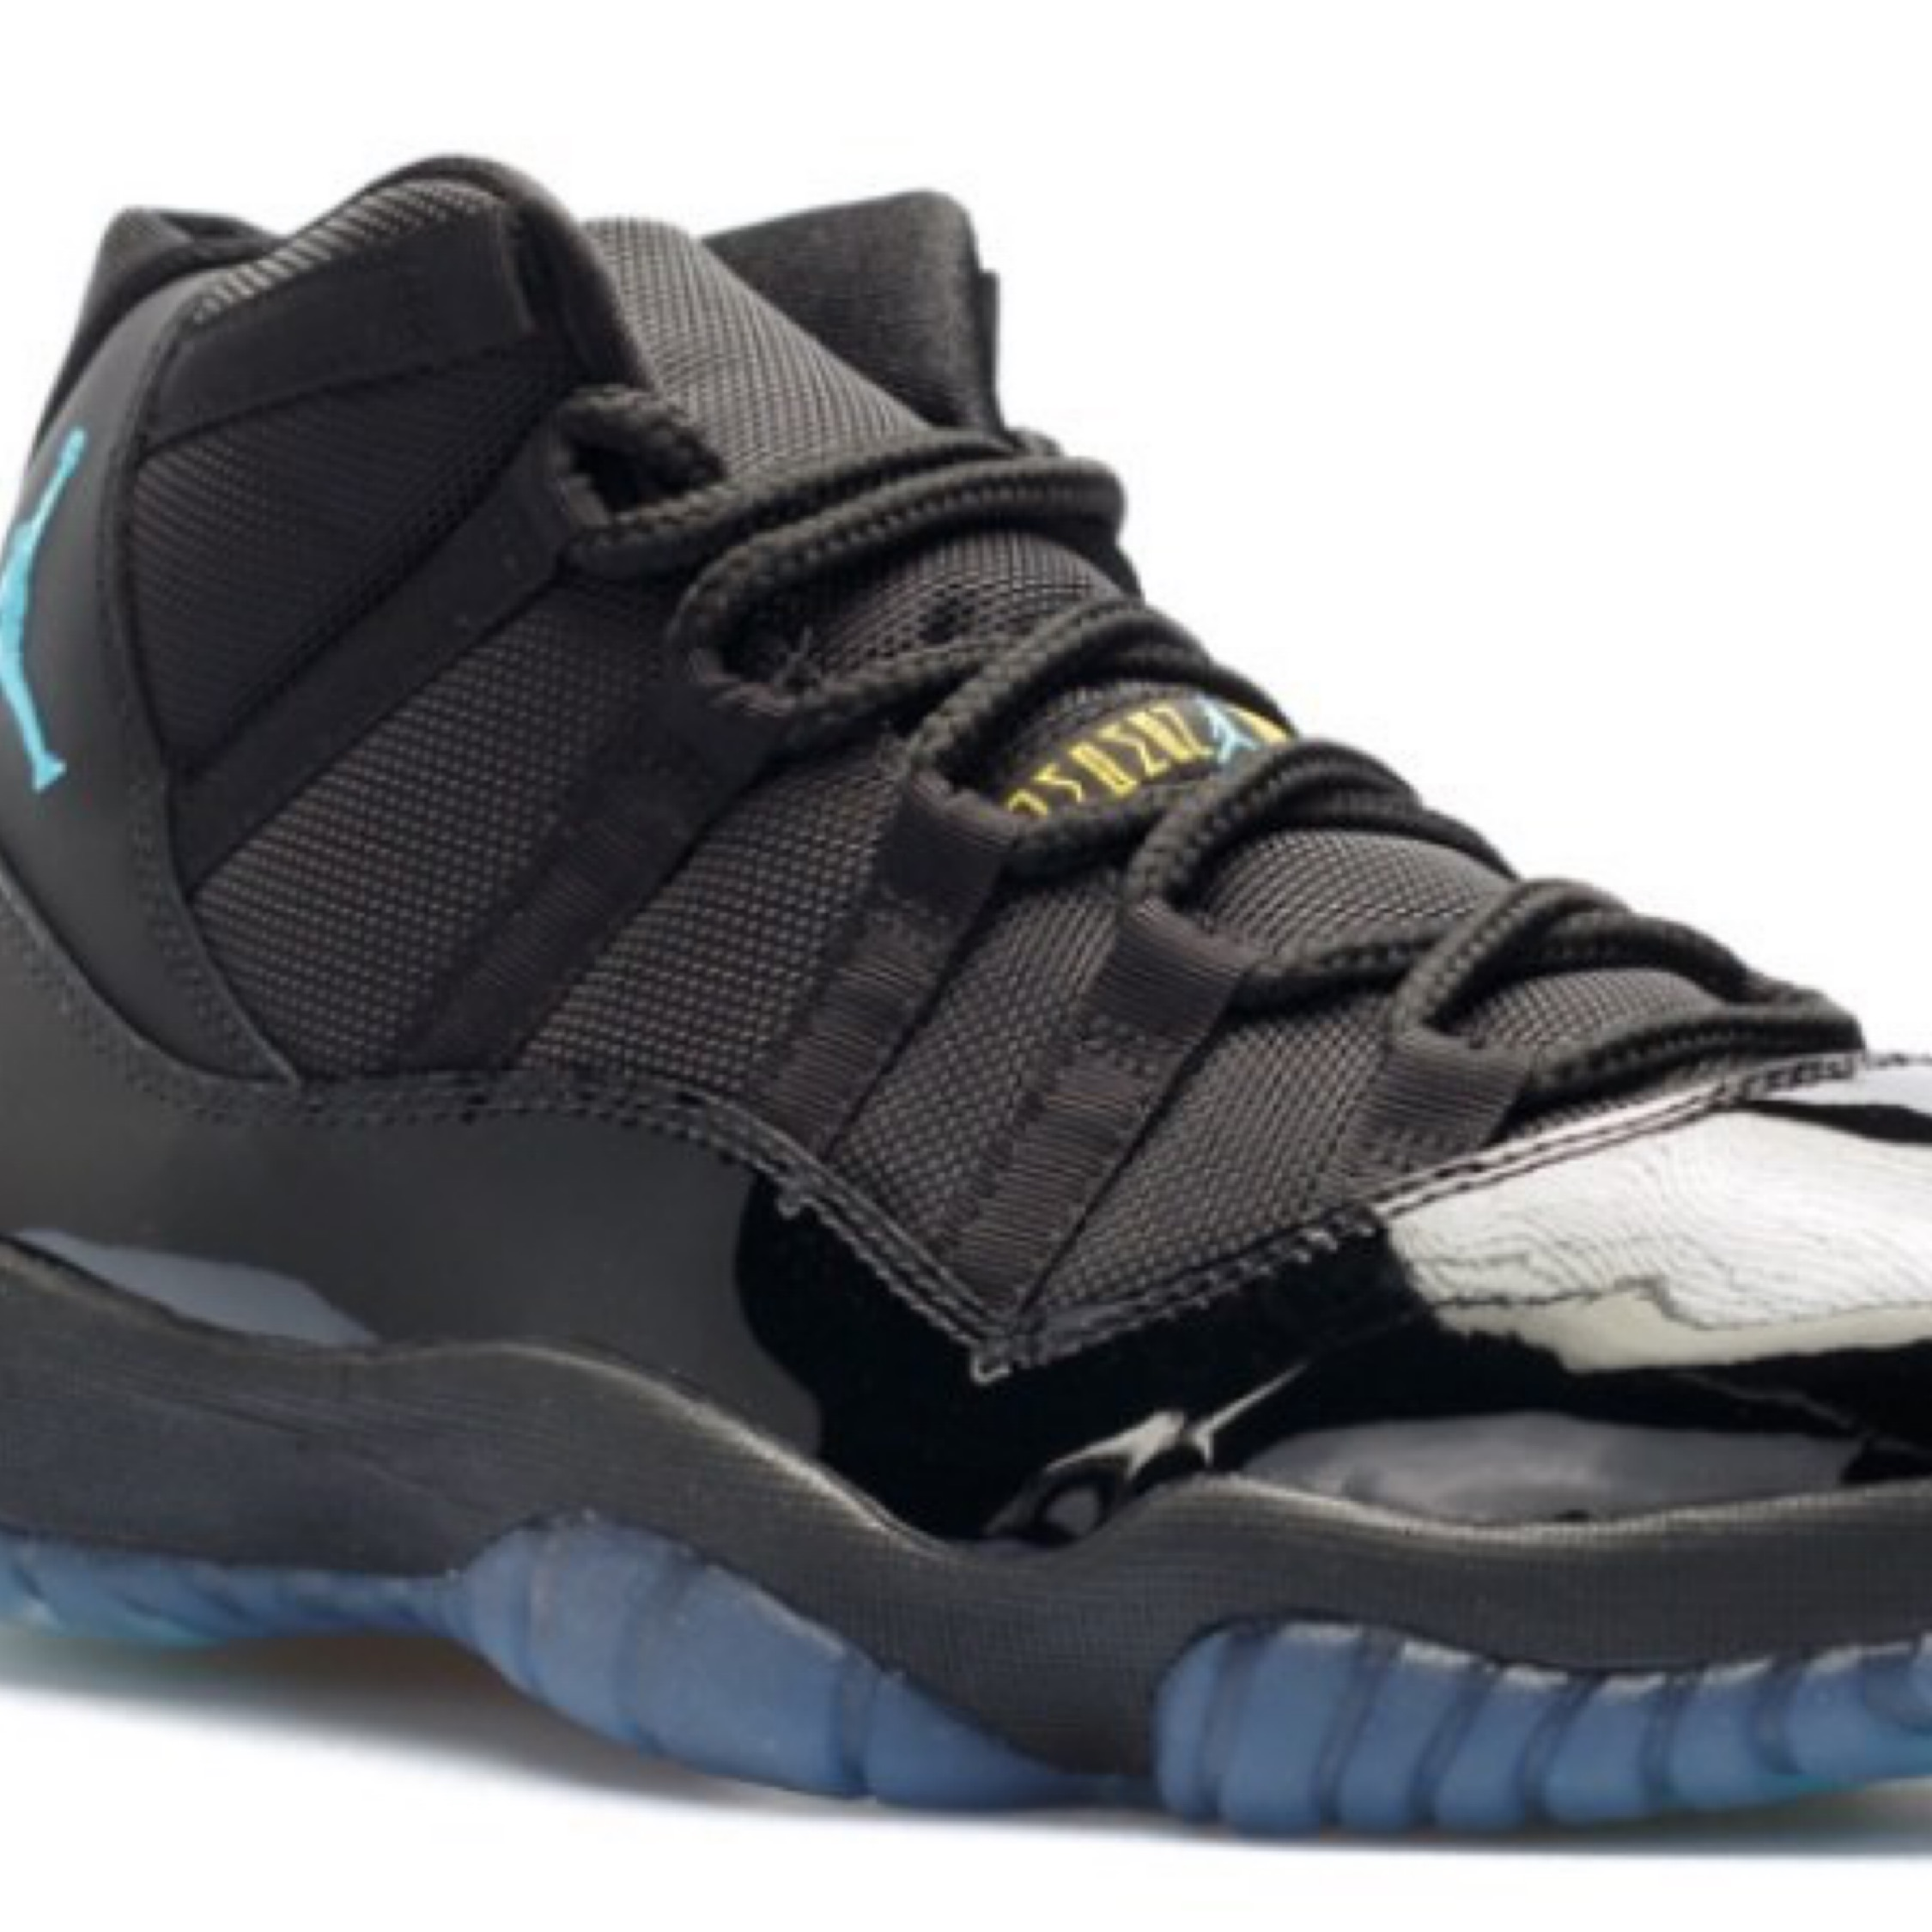 factory price fcbb4 f6b45 Nike Air Jordan 11 Retro Gamma Blue